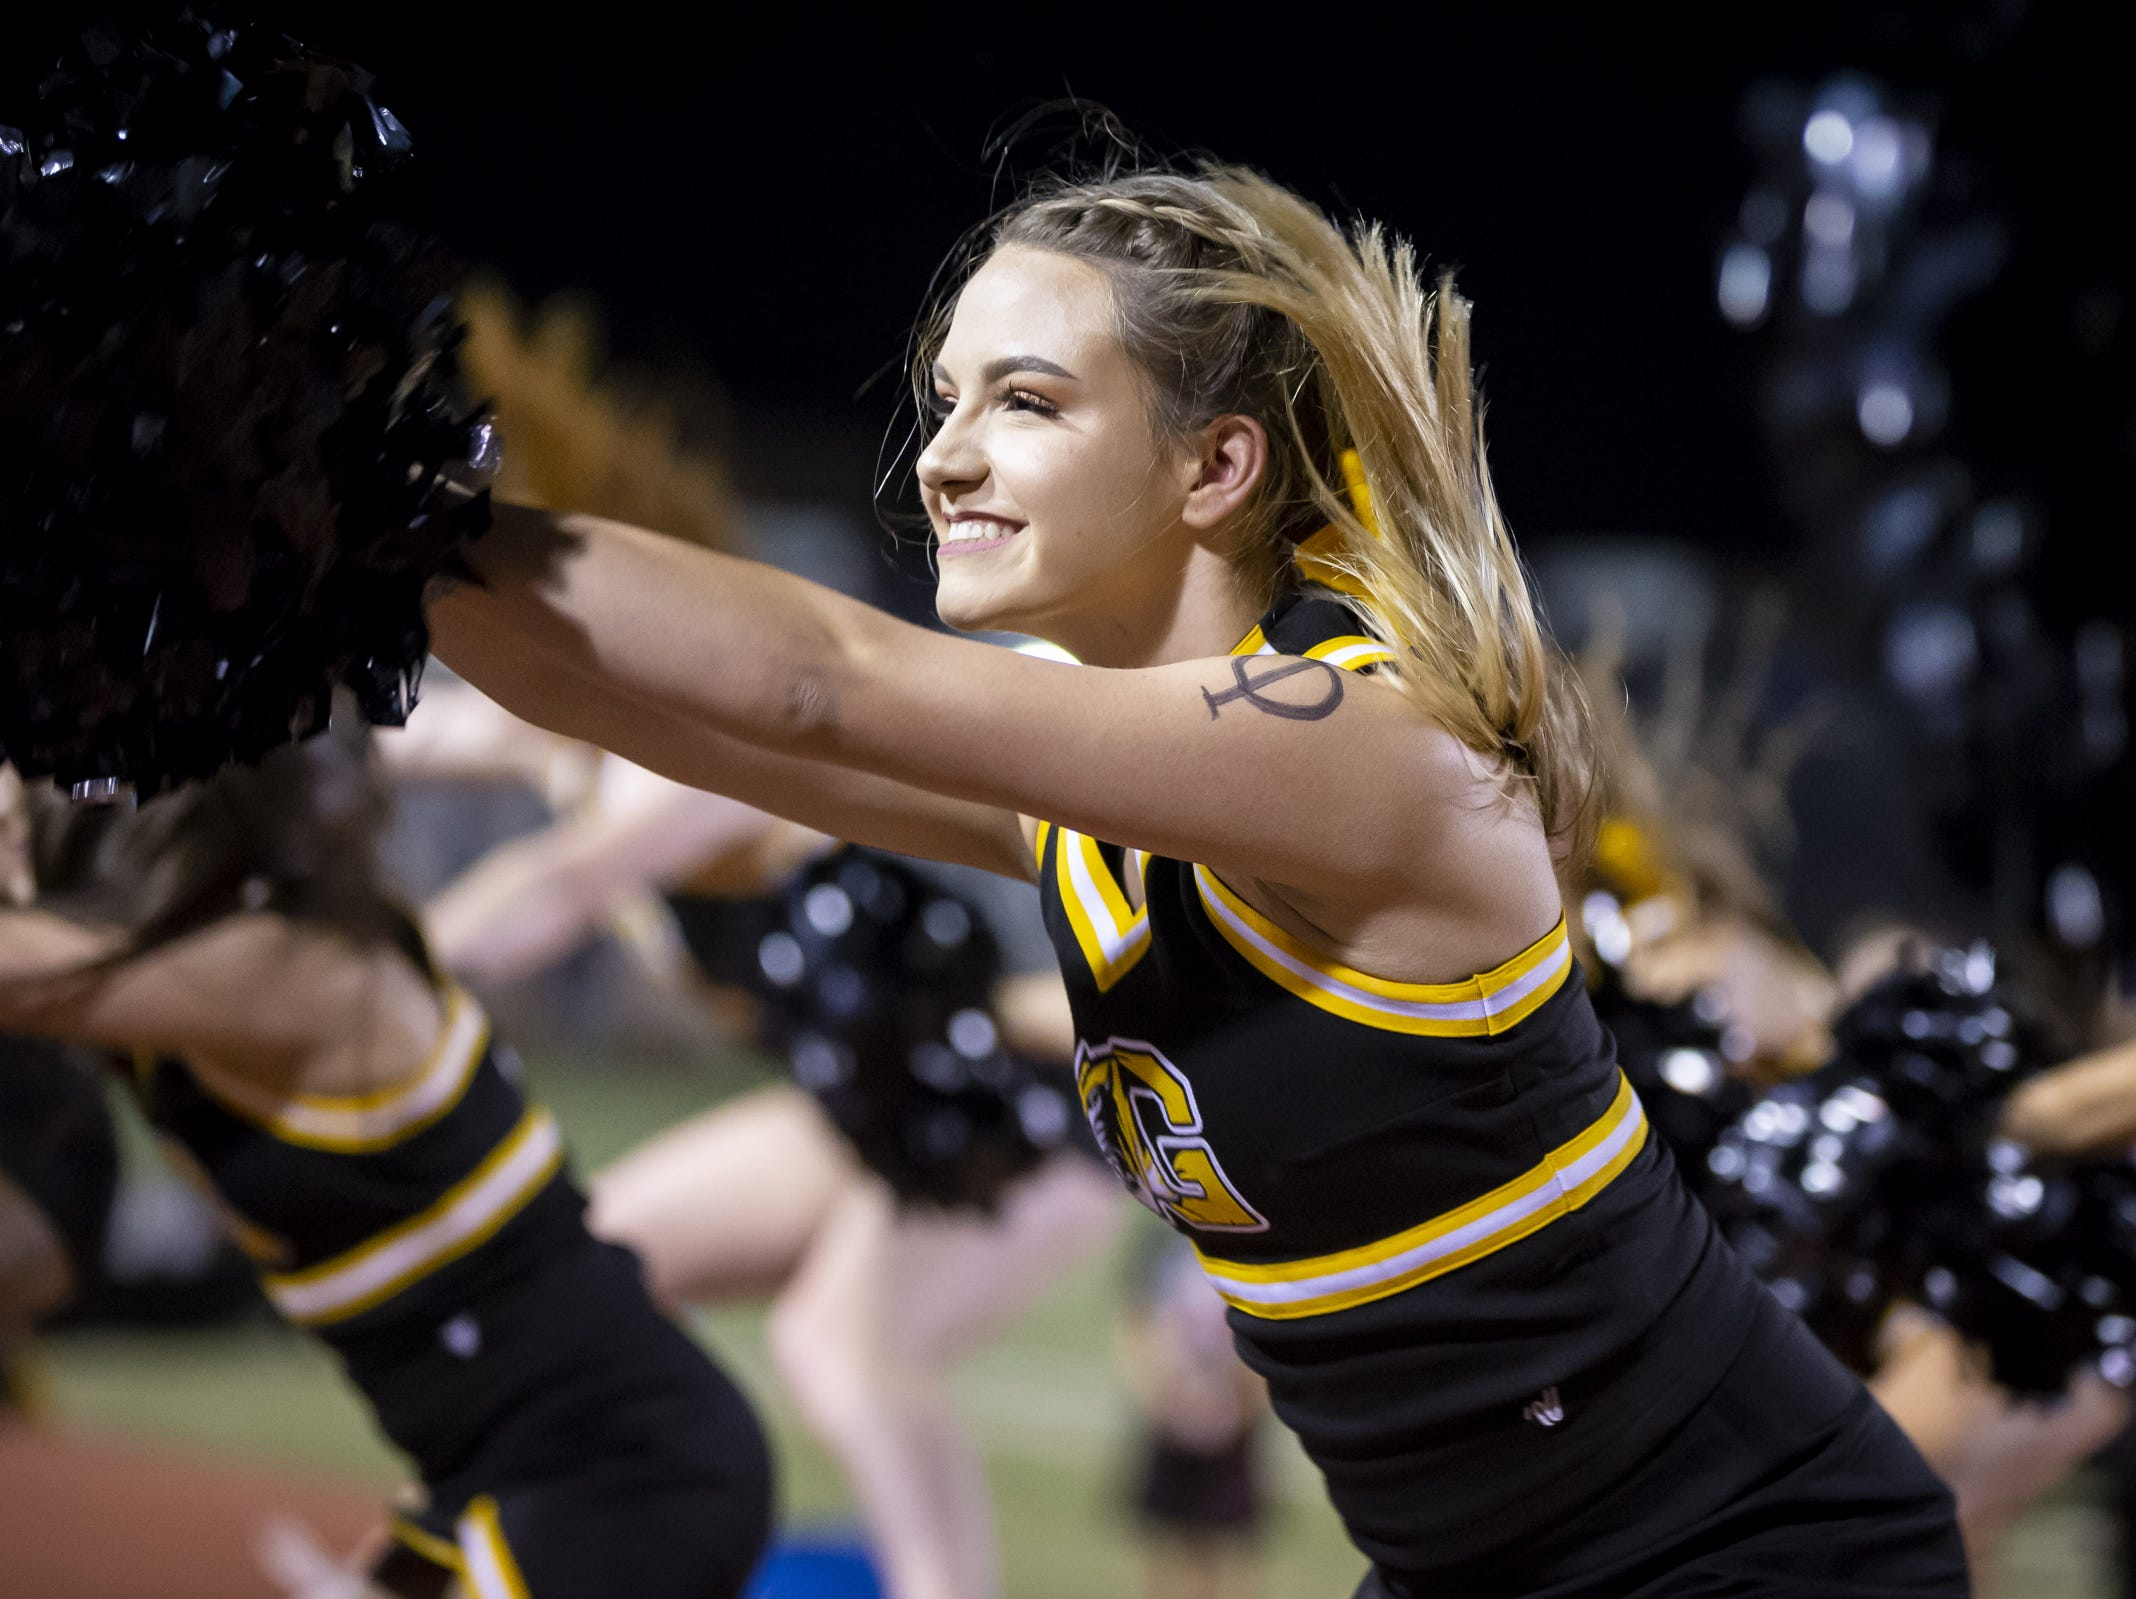 Senior cheerleader Julia Ruppel cheers during the game against the Notre Dame Prep Saints at Gilbert High School on Friday, August 31, 2018 in Gilbert, Arizona.